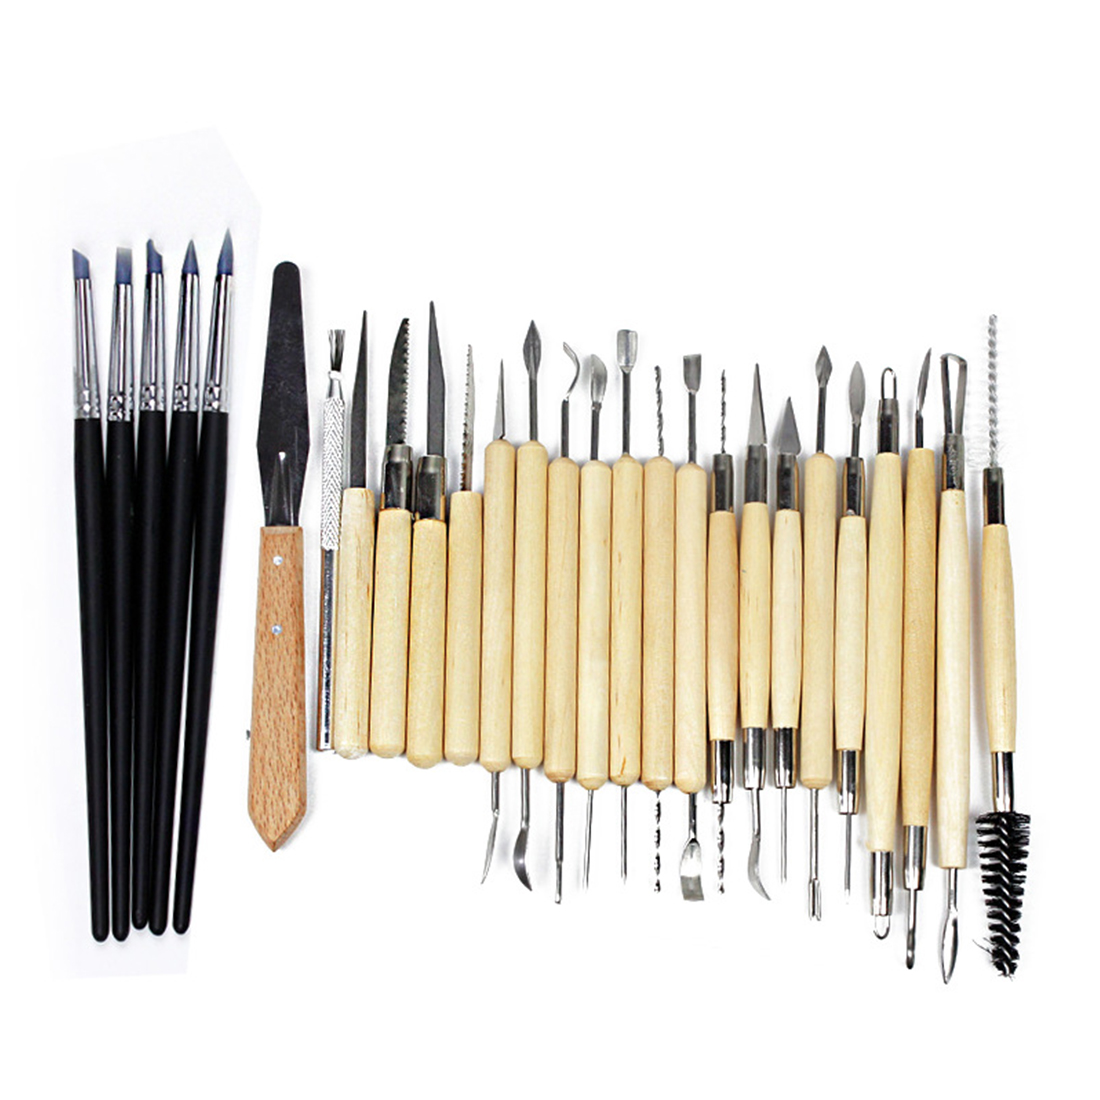 New 27pcs Silicone Rubber Shapers Pottery Clay Sculpture Carving Modeling Pottery Hobby ToolsNew 27pcs Silicone Rubber Shapers Pottery Clay Sculpture Carving Modeling Pottery Hobby Tools